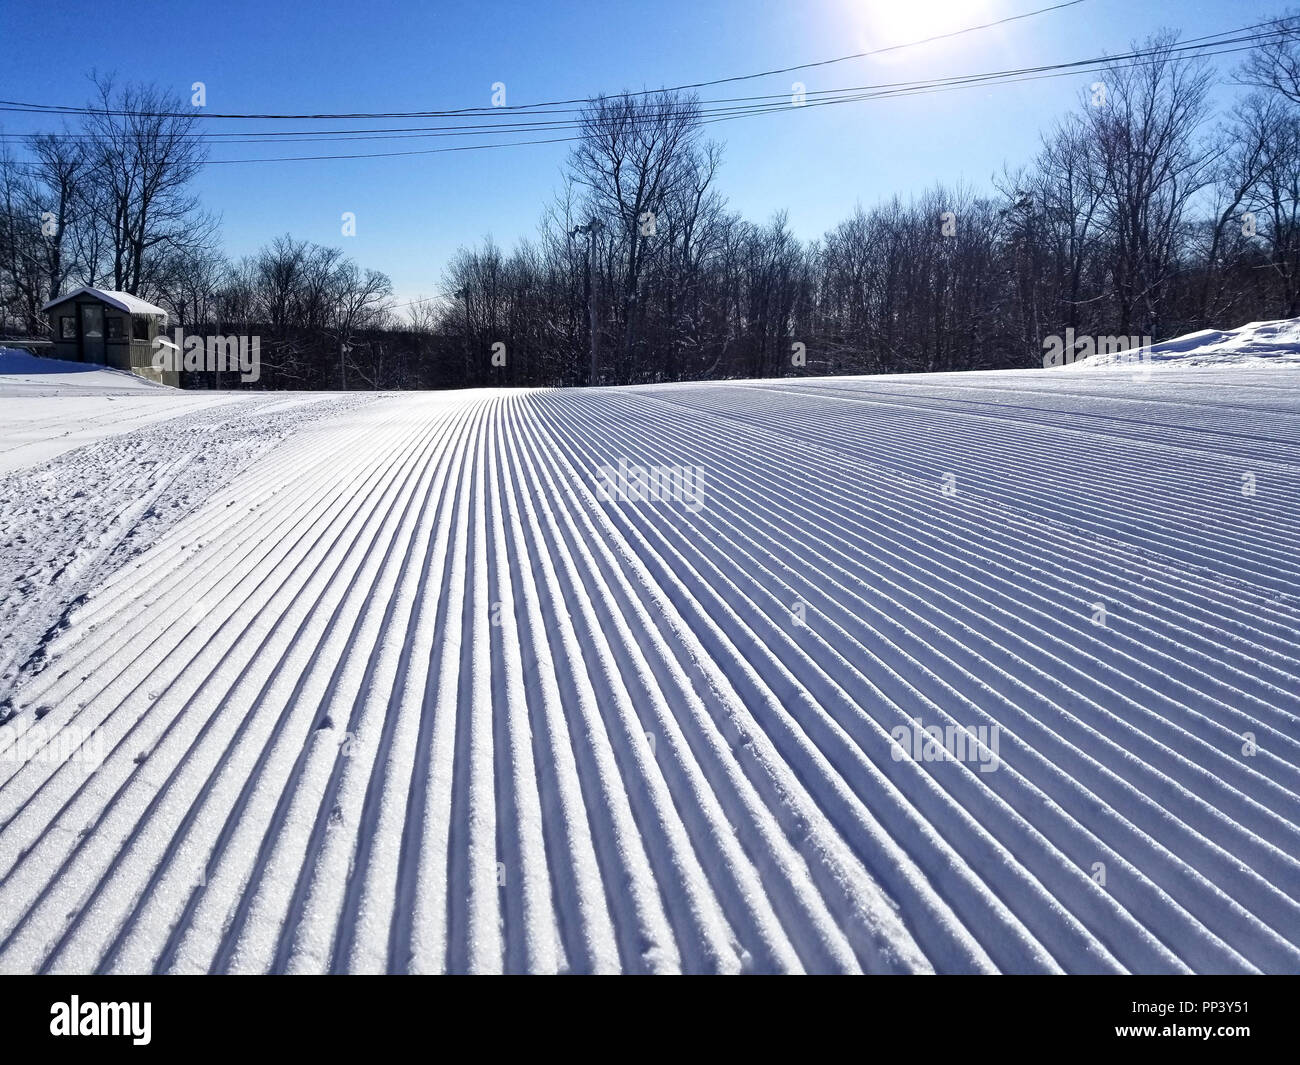 Groomed snow of alpine skiing trails at Saint-Sauveur, Quebec Stock Photo